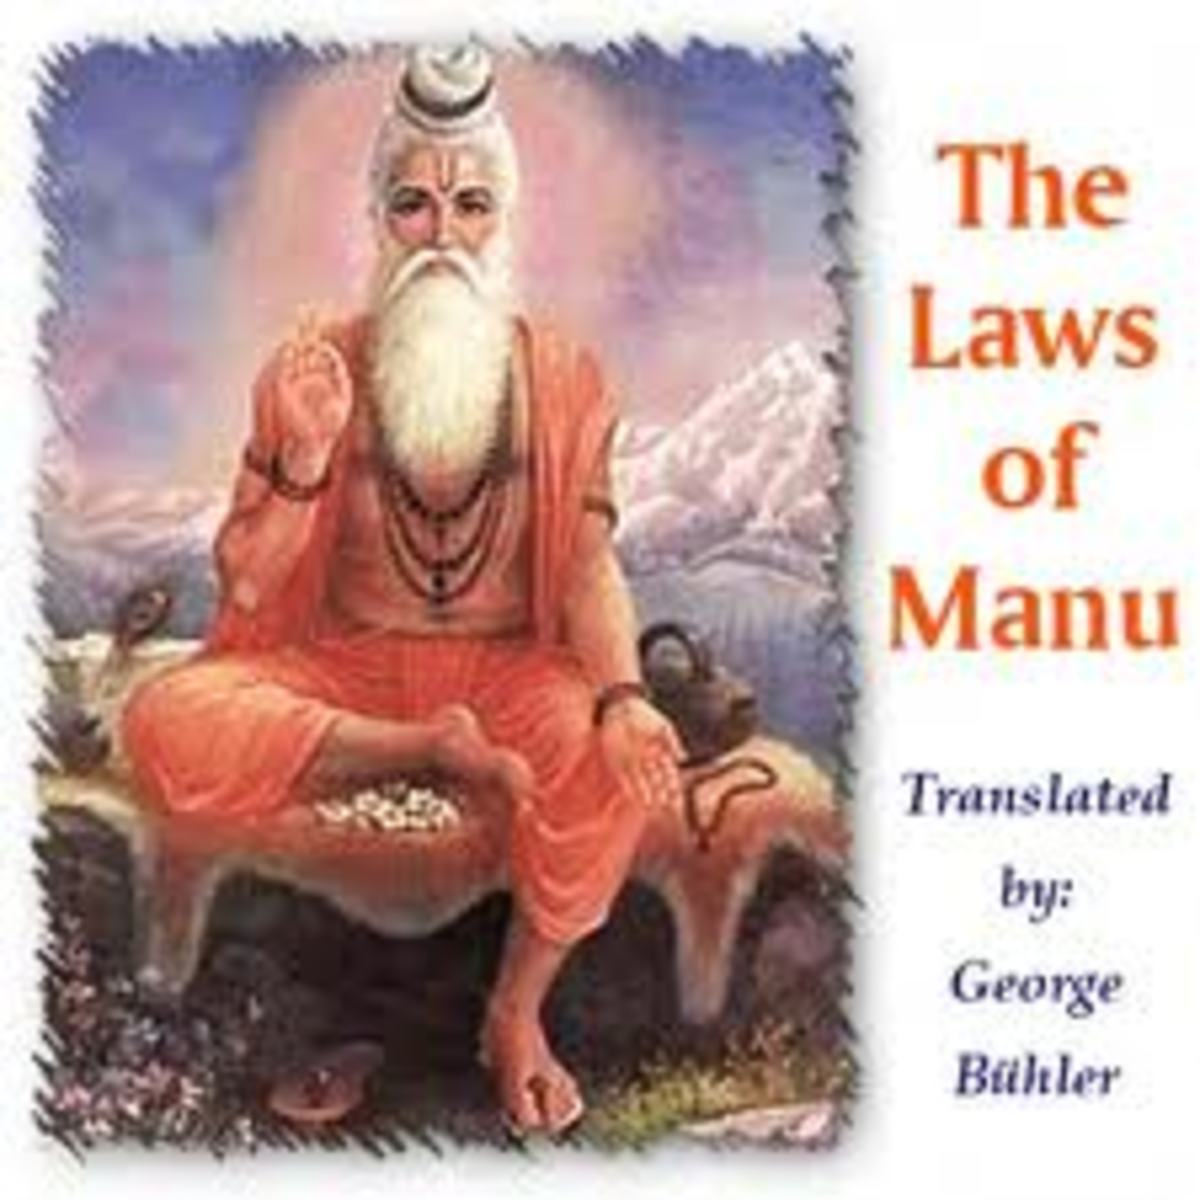 In the The Laws of Manu some sages ask Manu about the creation of the world and the creation of the castes or mankind.